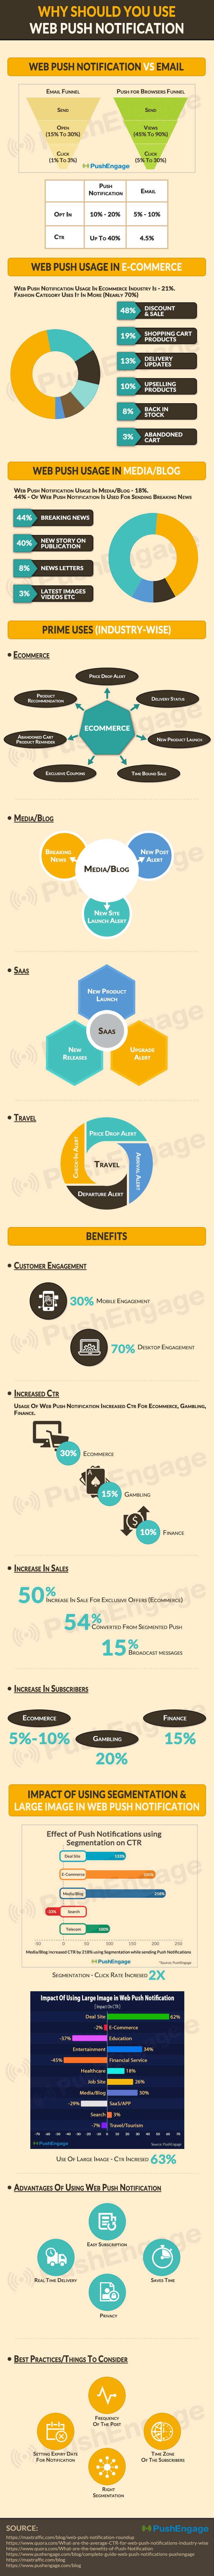 Why should you use Web Push Notifications Infographic